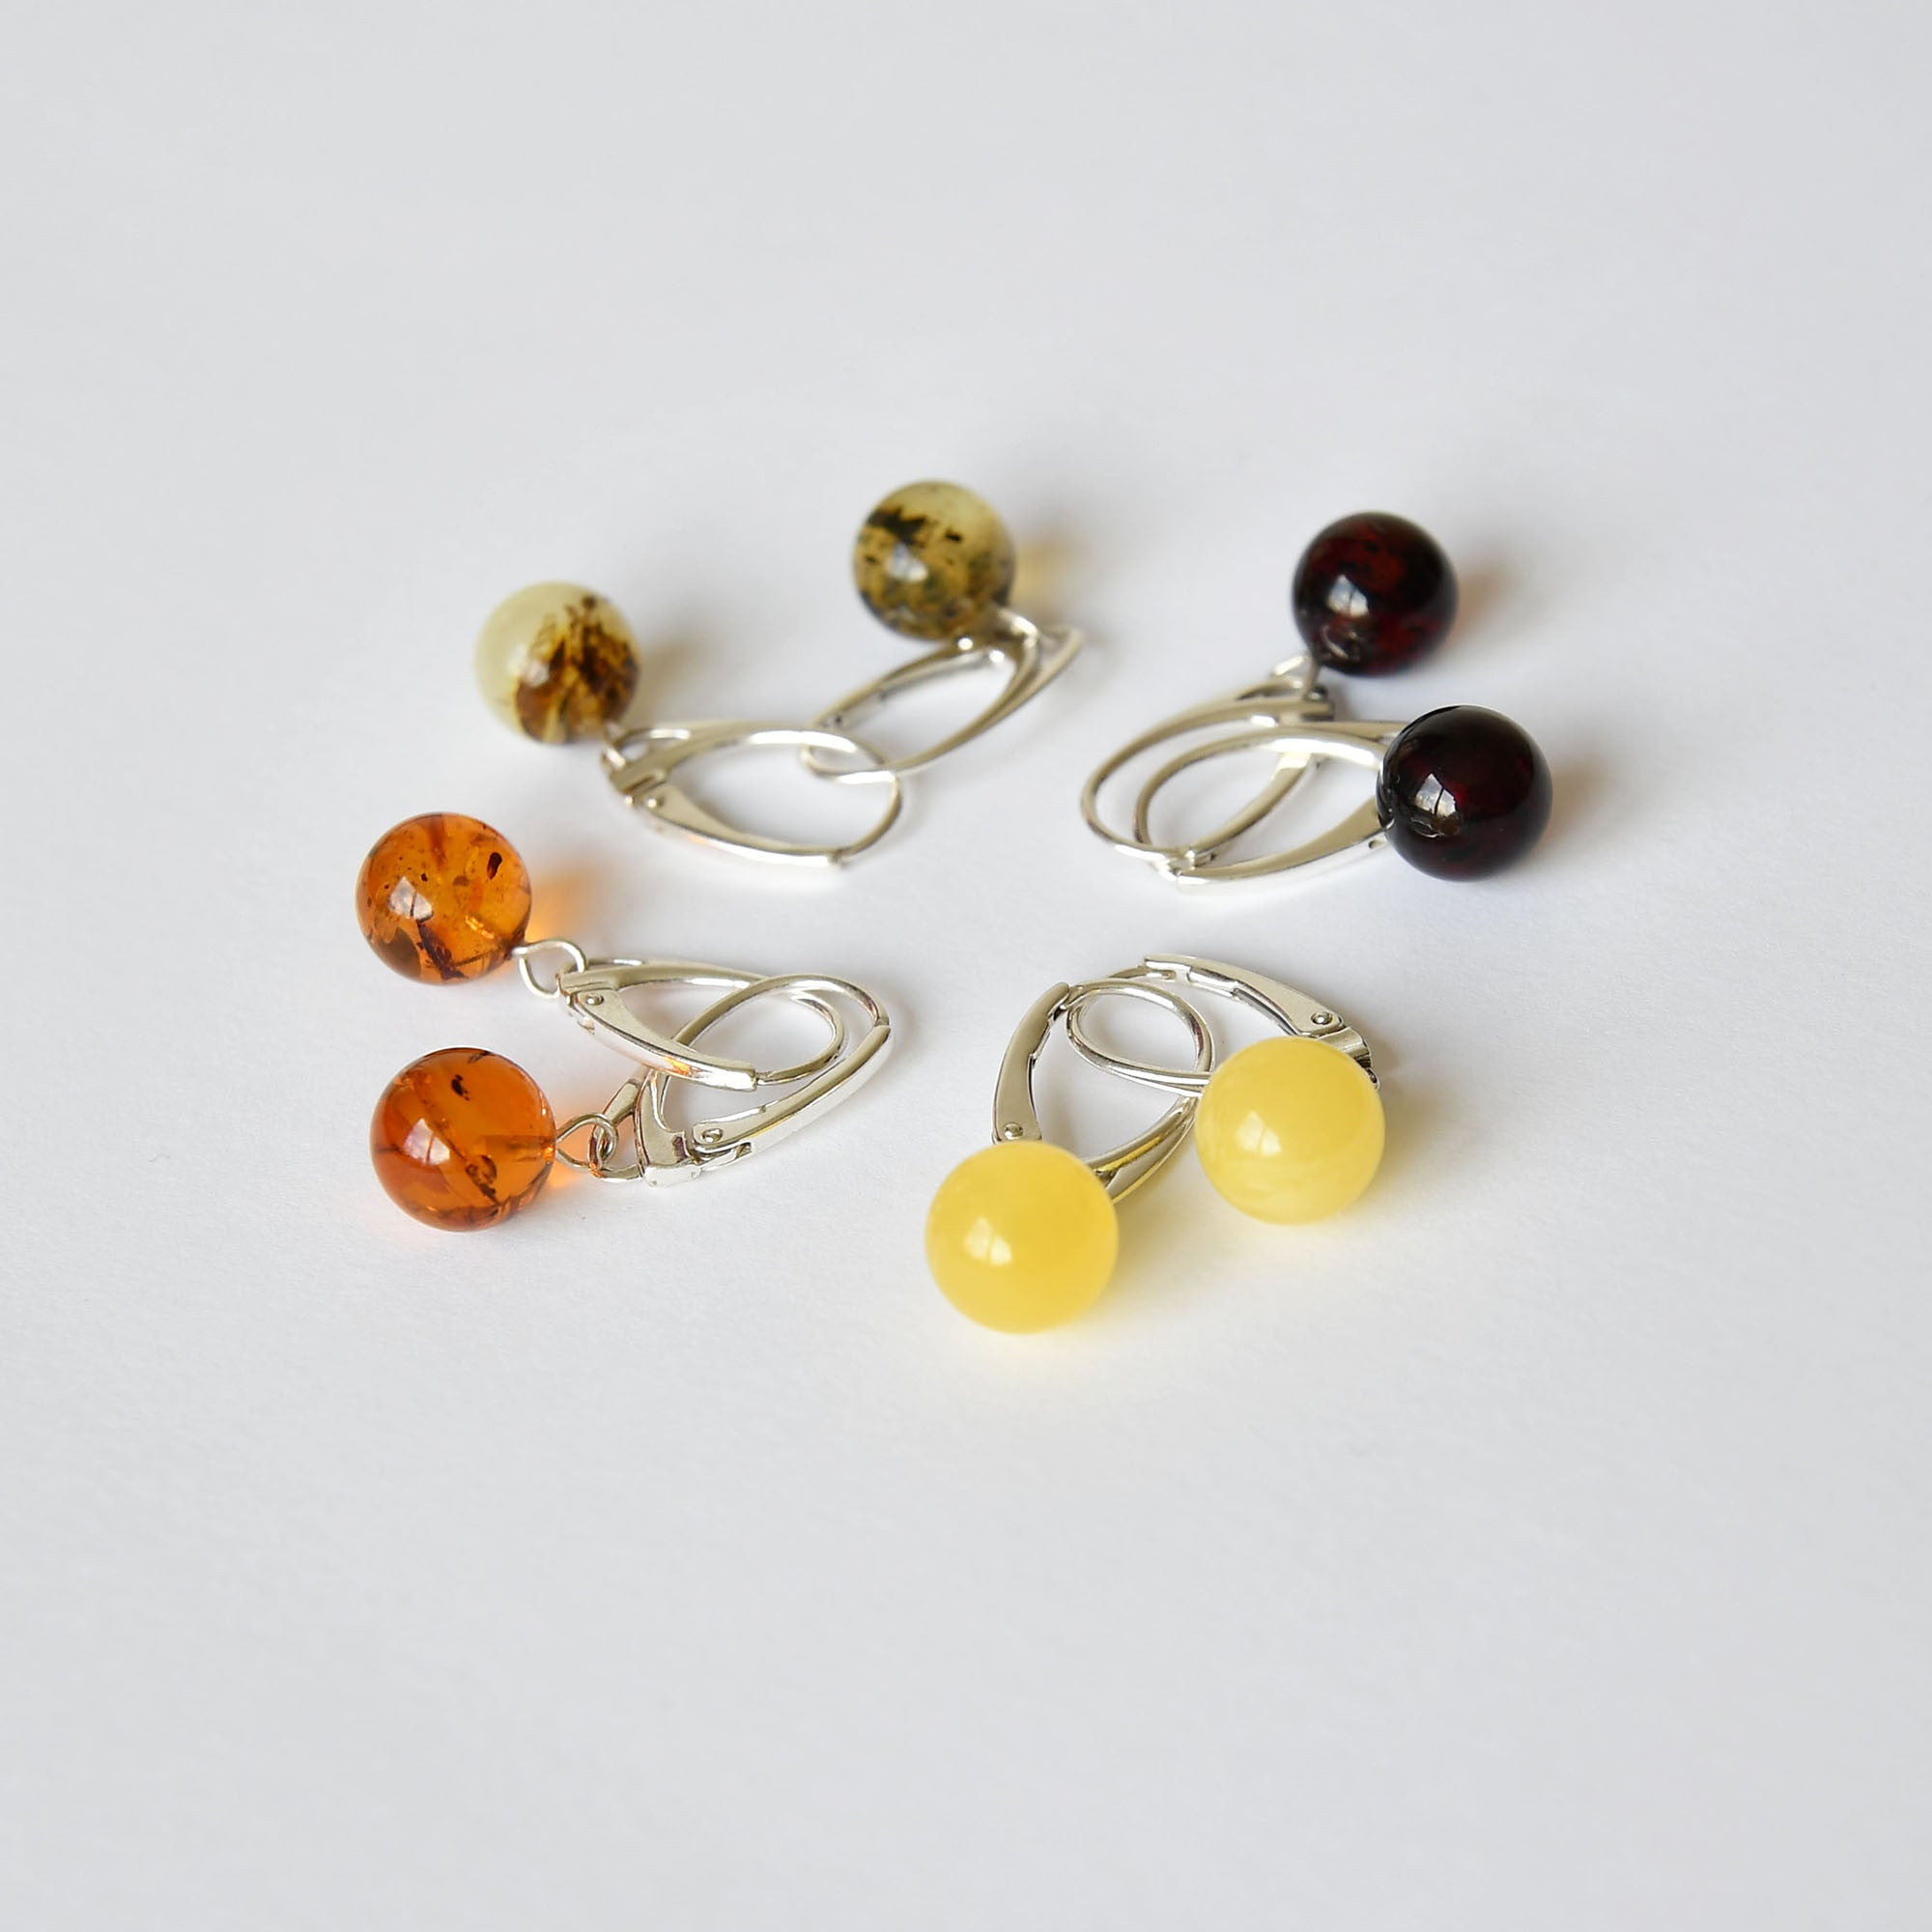 Amber earrings - balls with silver